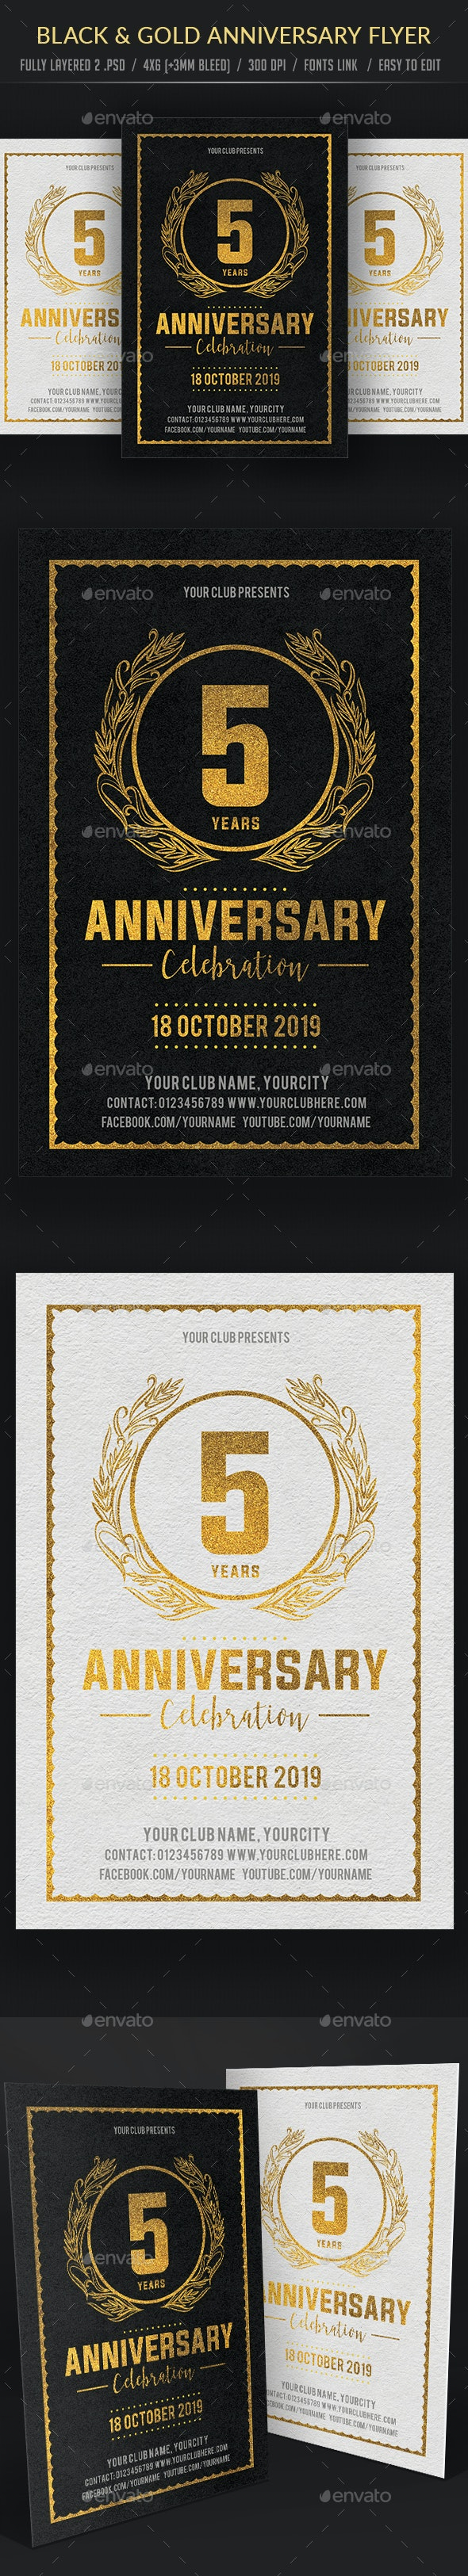 Black & Gold Anniversary Flyer - Events Flyers